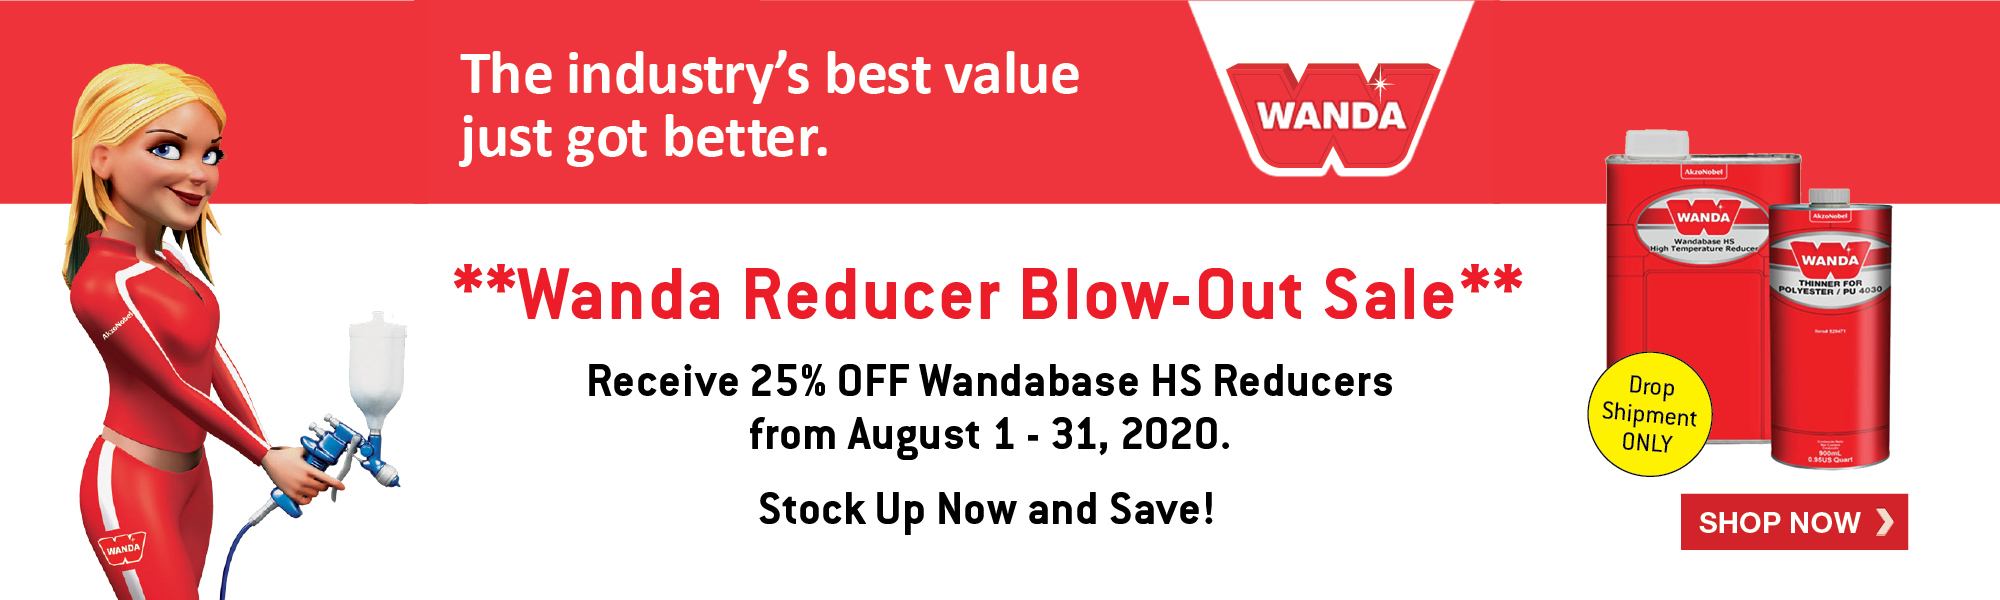 Wanda Reducer Blow Out Sale August 2020